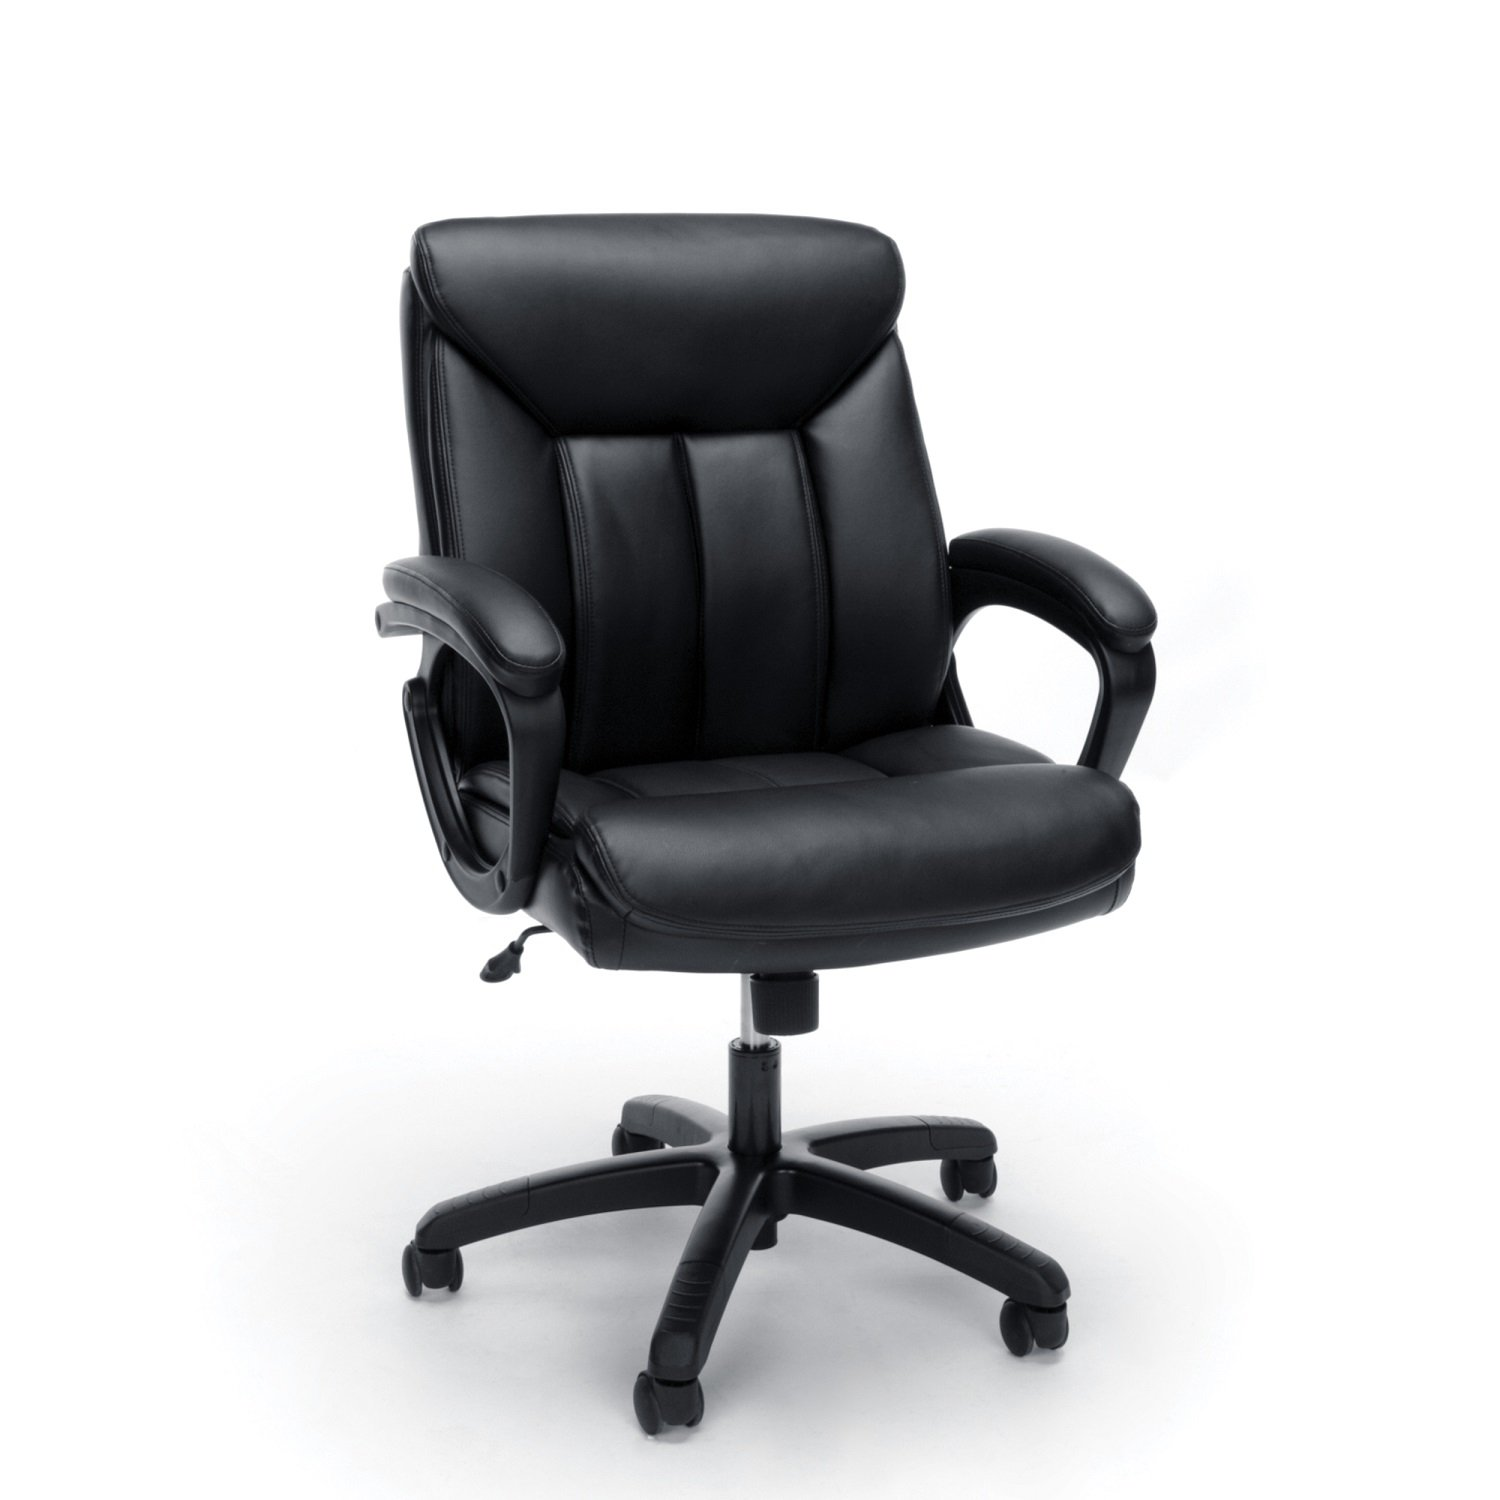 Essentials Leather Executive Computer/Office Chair with Arms - Ergonomic Swivel Chair, Black (ESS-6020-BLK)